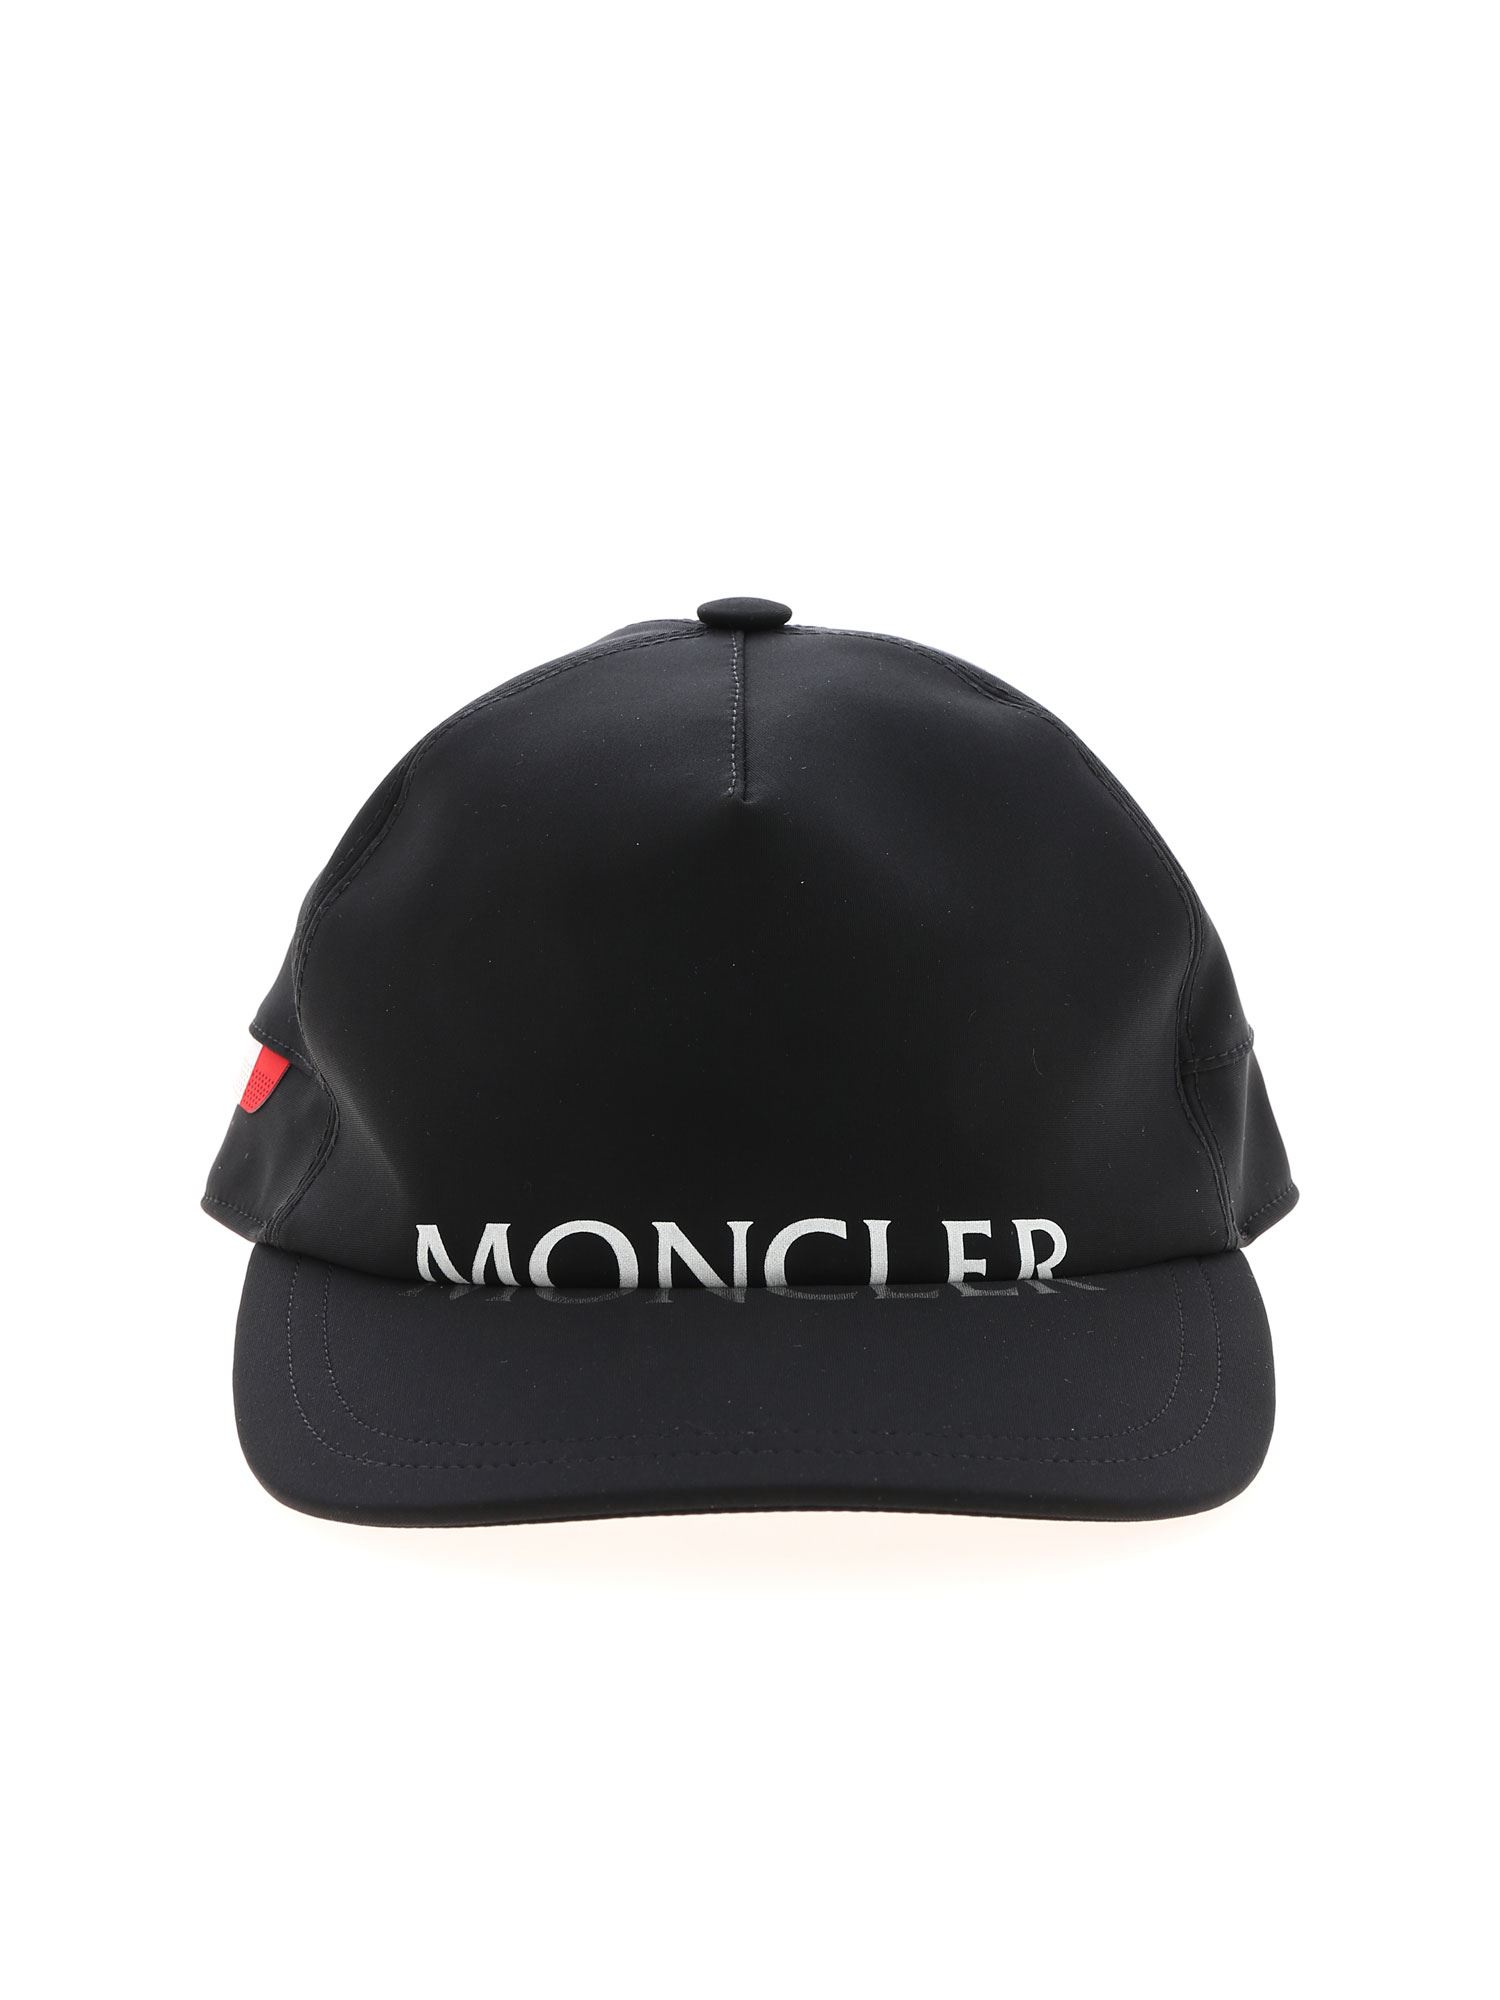 Moncler WHITE LOGO CAP IN BLACK